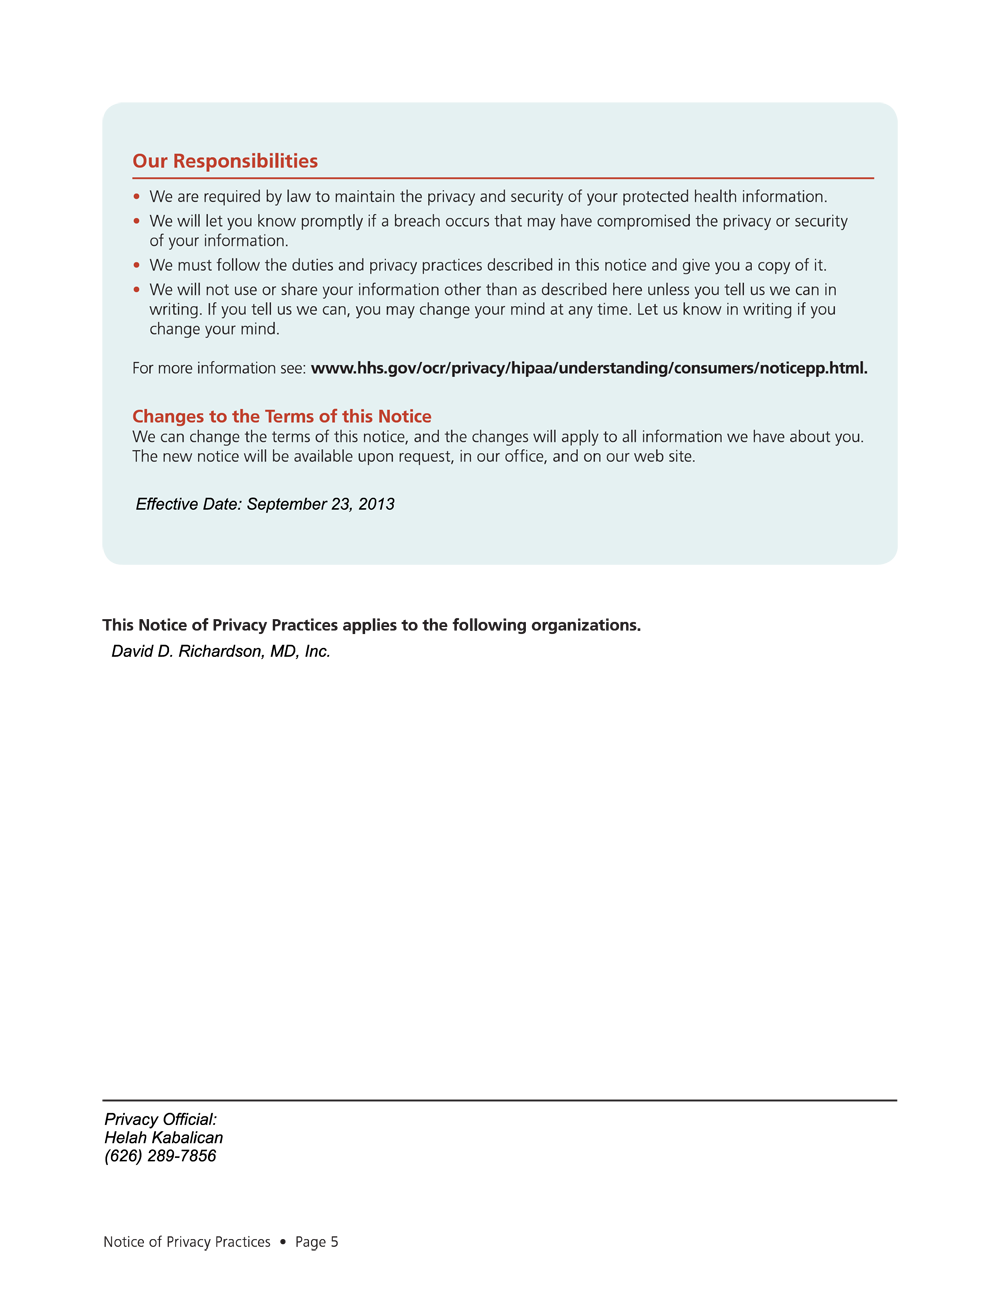 HIPAA-Notice-of-Privacy-Practices-Dr-Richardson